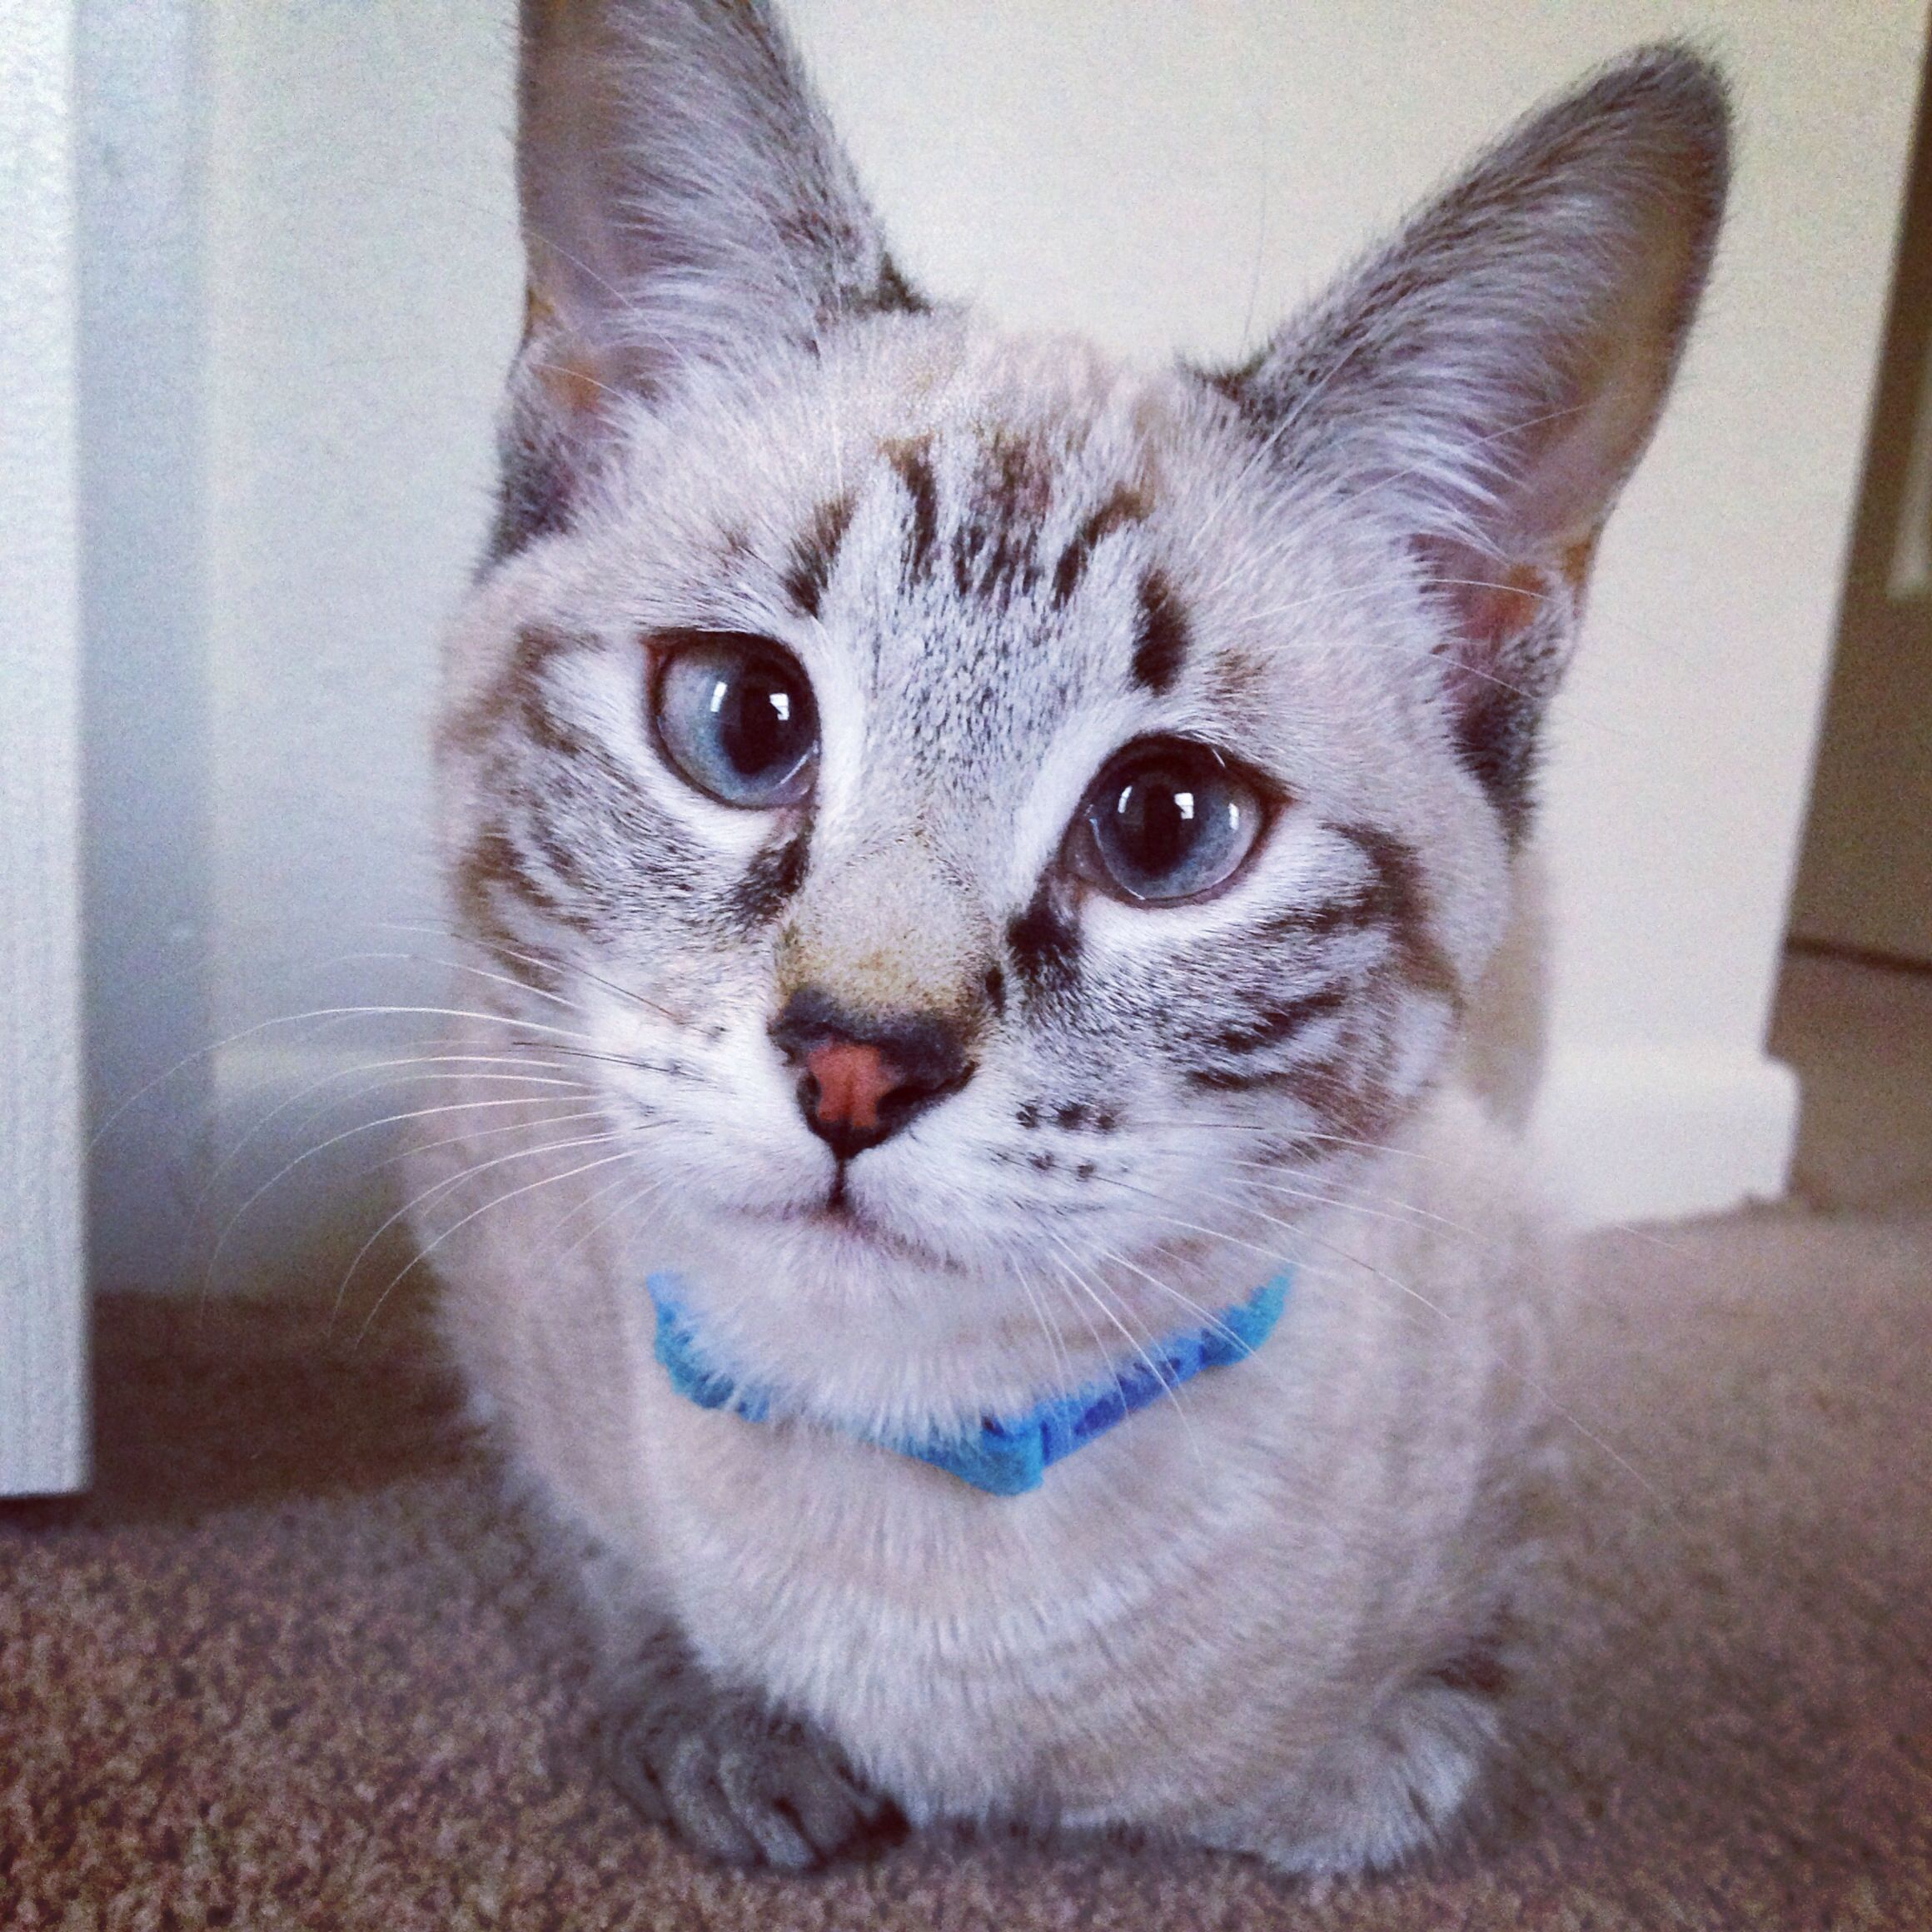 That face! Blue eyed lynx point siamese Crazy Cat Lady